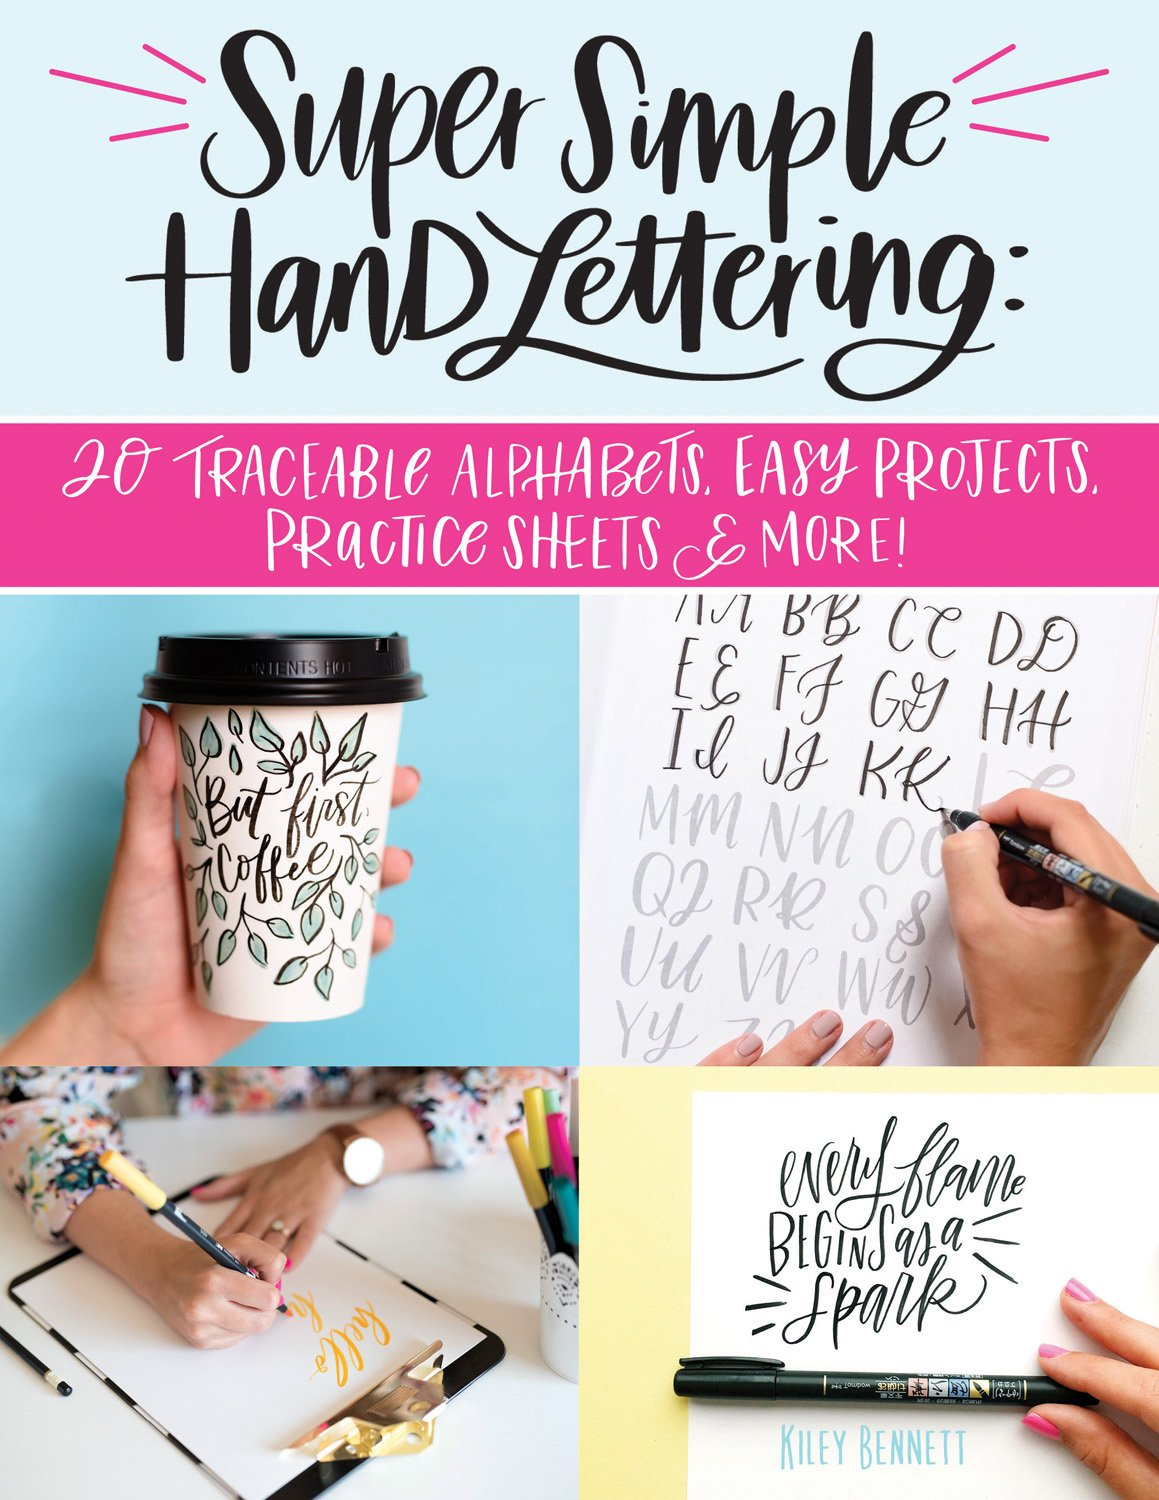 Super Simple Hand Lettering: 20 Traceable Alphabets, Easy Projects